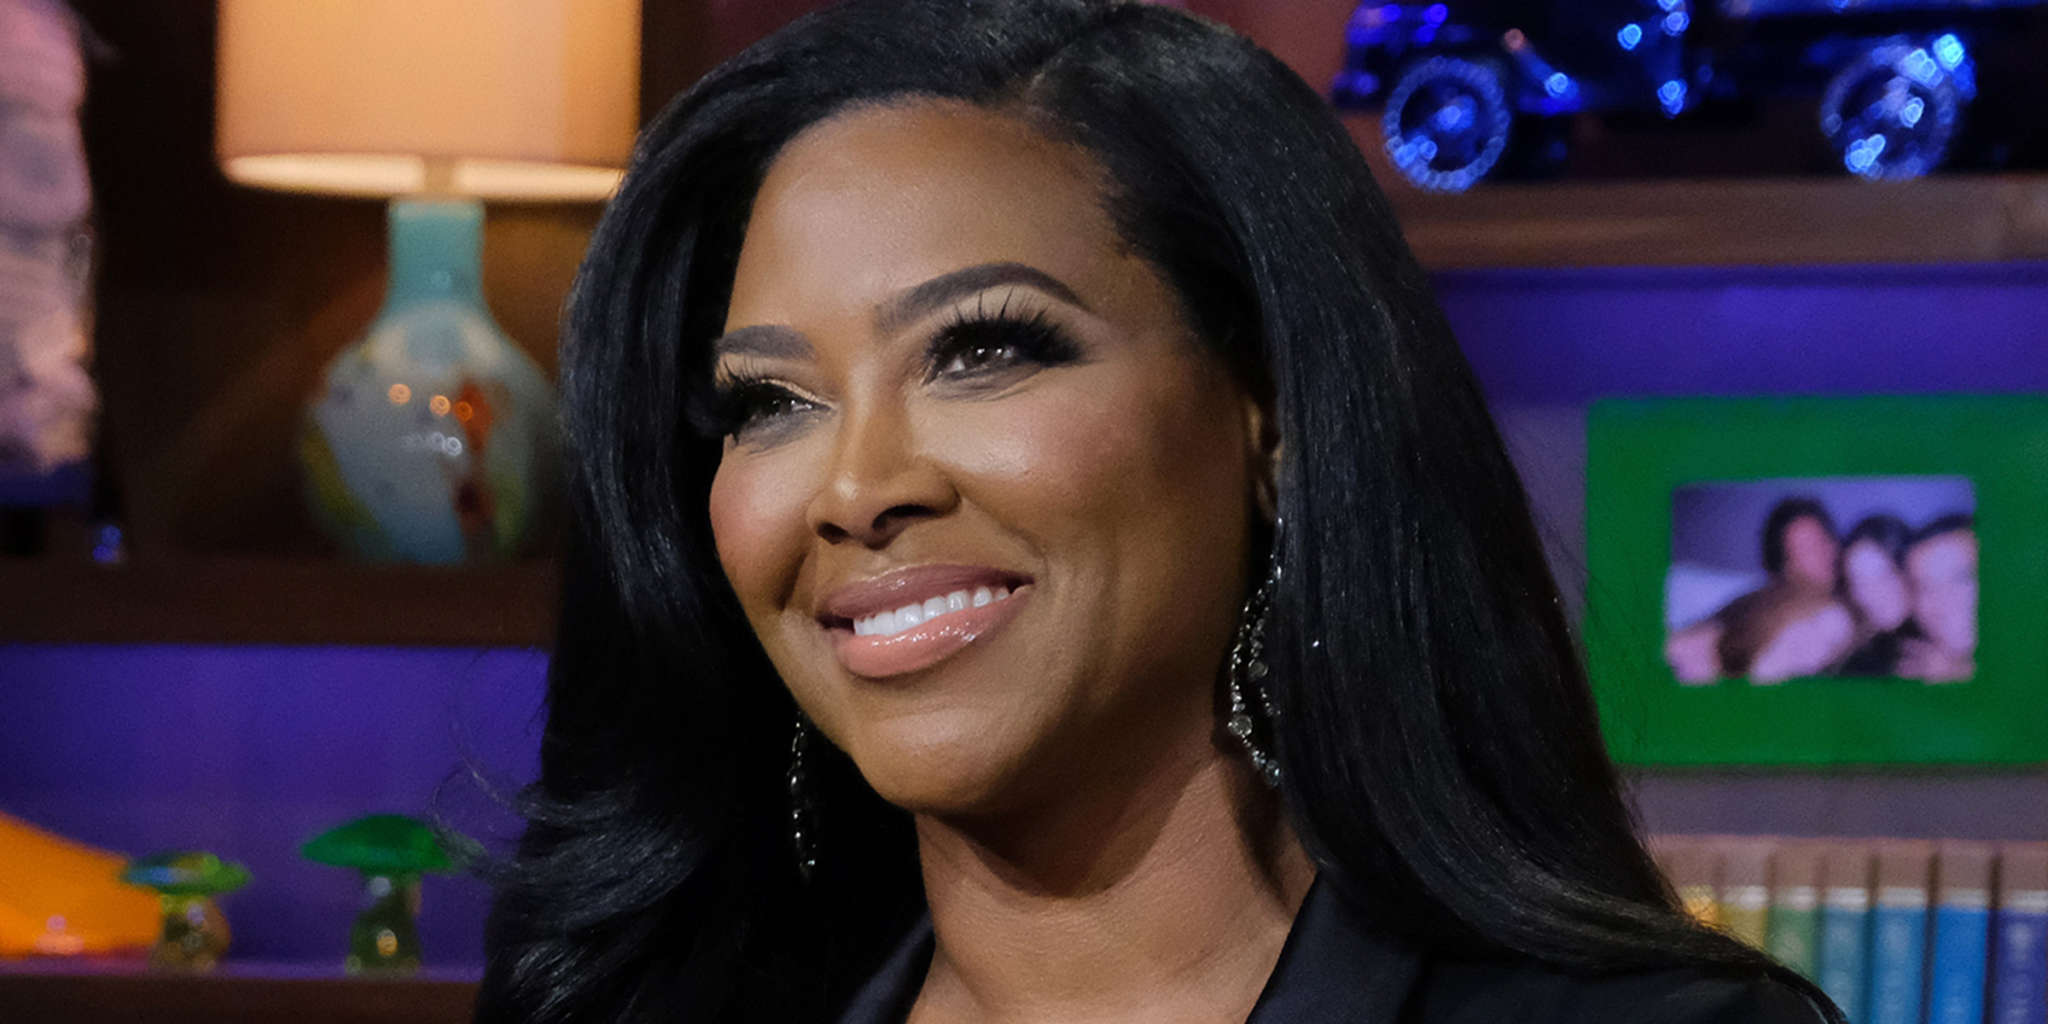 Kenya Moore Shows Off Her Flawless Look In This Video